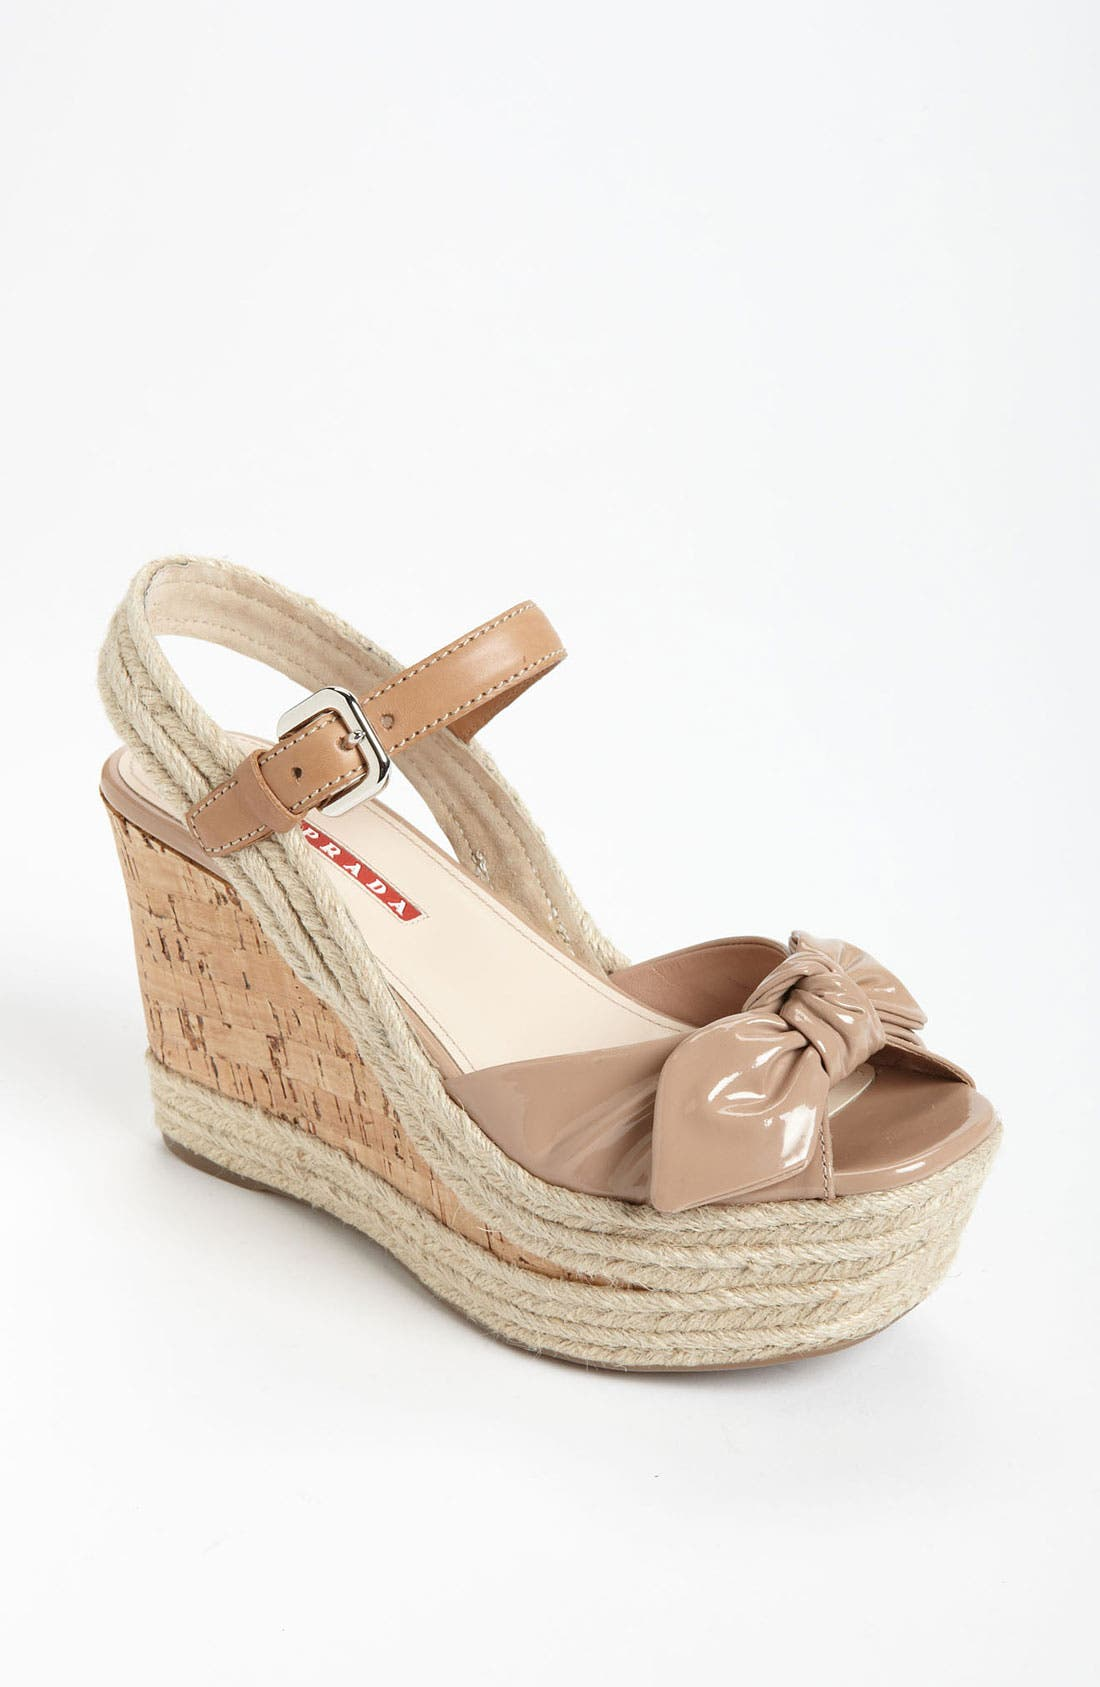 Main Image - Prada Wedge Sandal